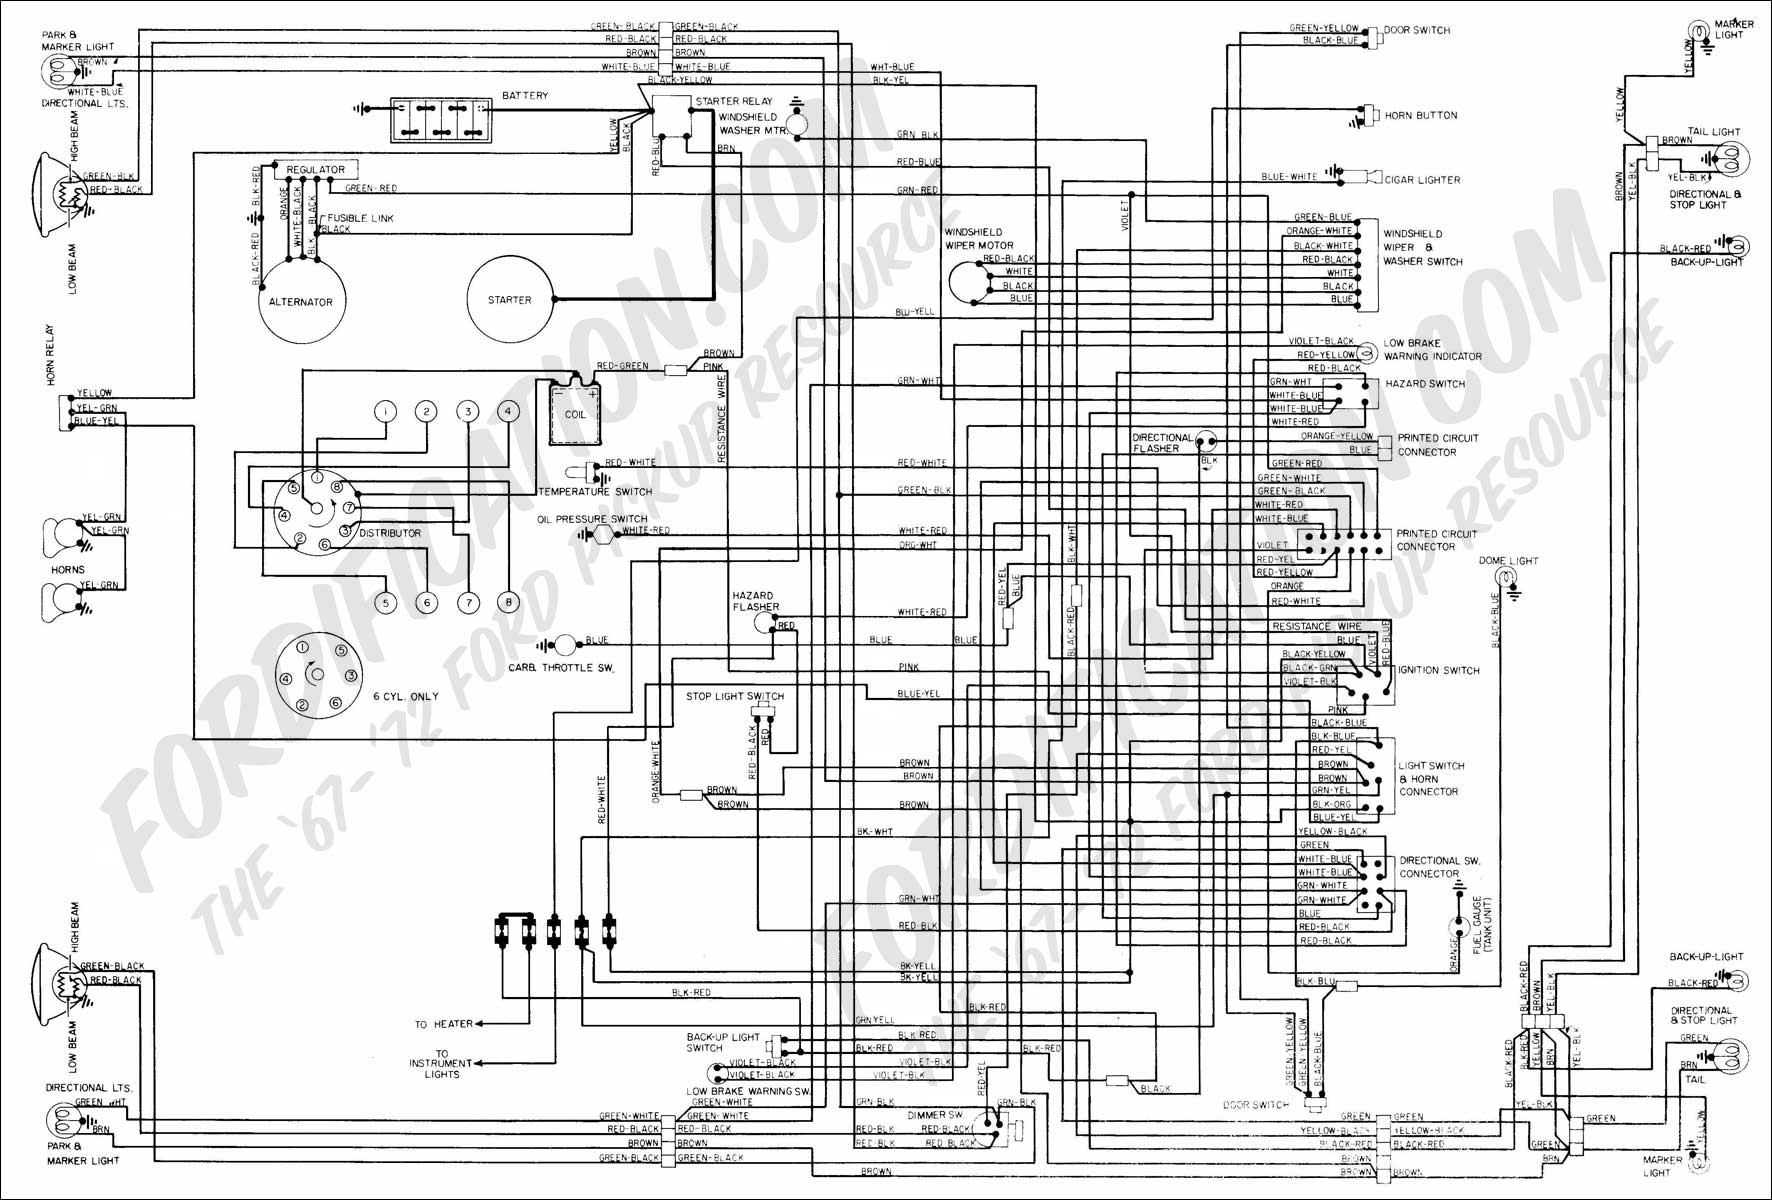 f350 wiring diagram detailed schematics diagram rh keyplusrubber com 1983  Ford Truck Wiring Diagram 1980 Ford